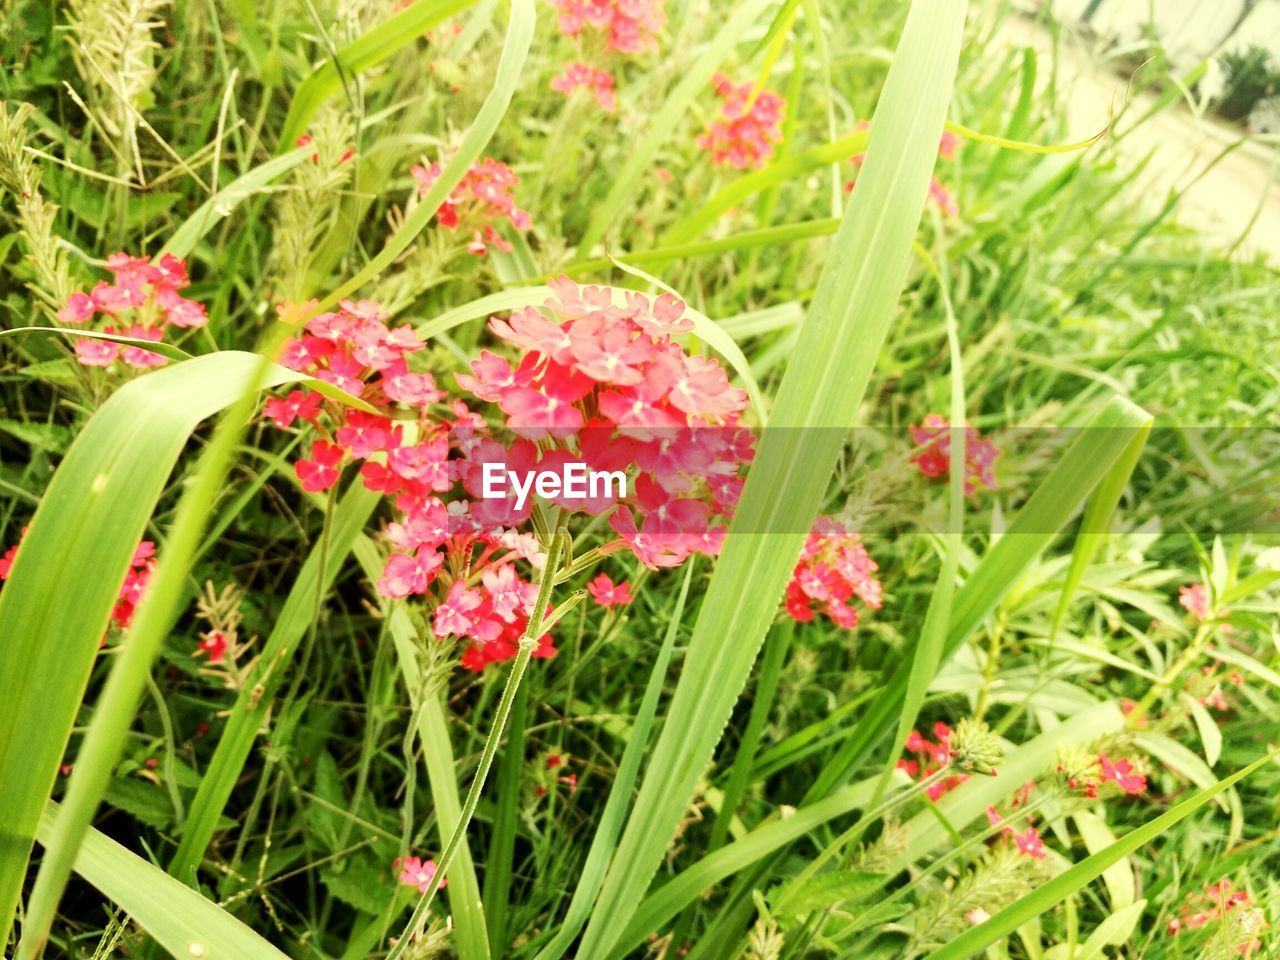 grass, flower, green color, growth, nature, day, plant, outdoors, freshness, no people, red, beauty in nature, leaf, fragility, close-up, flower head